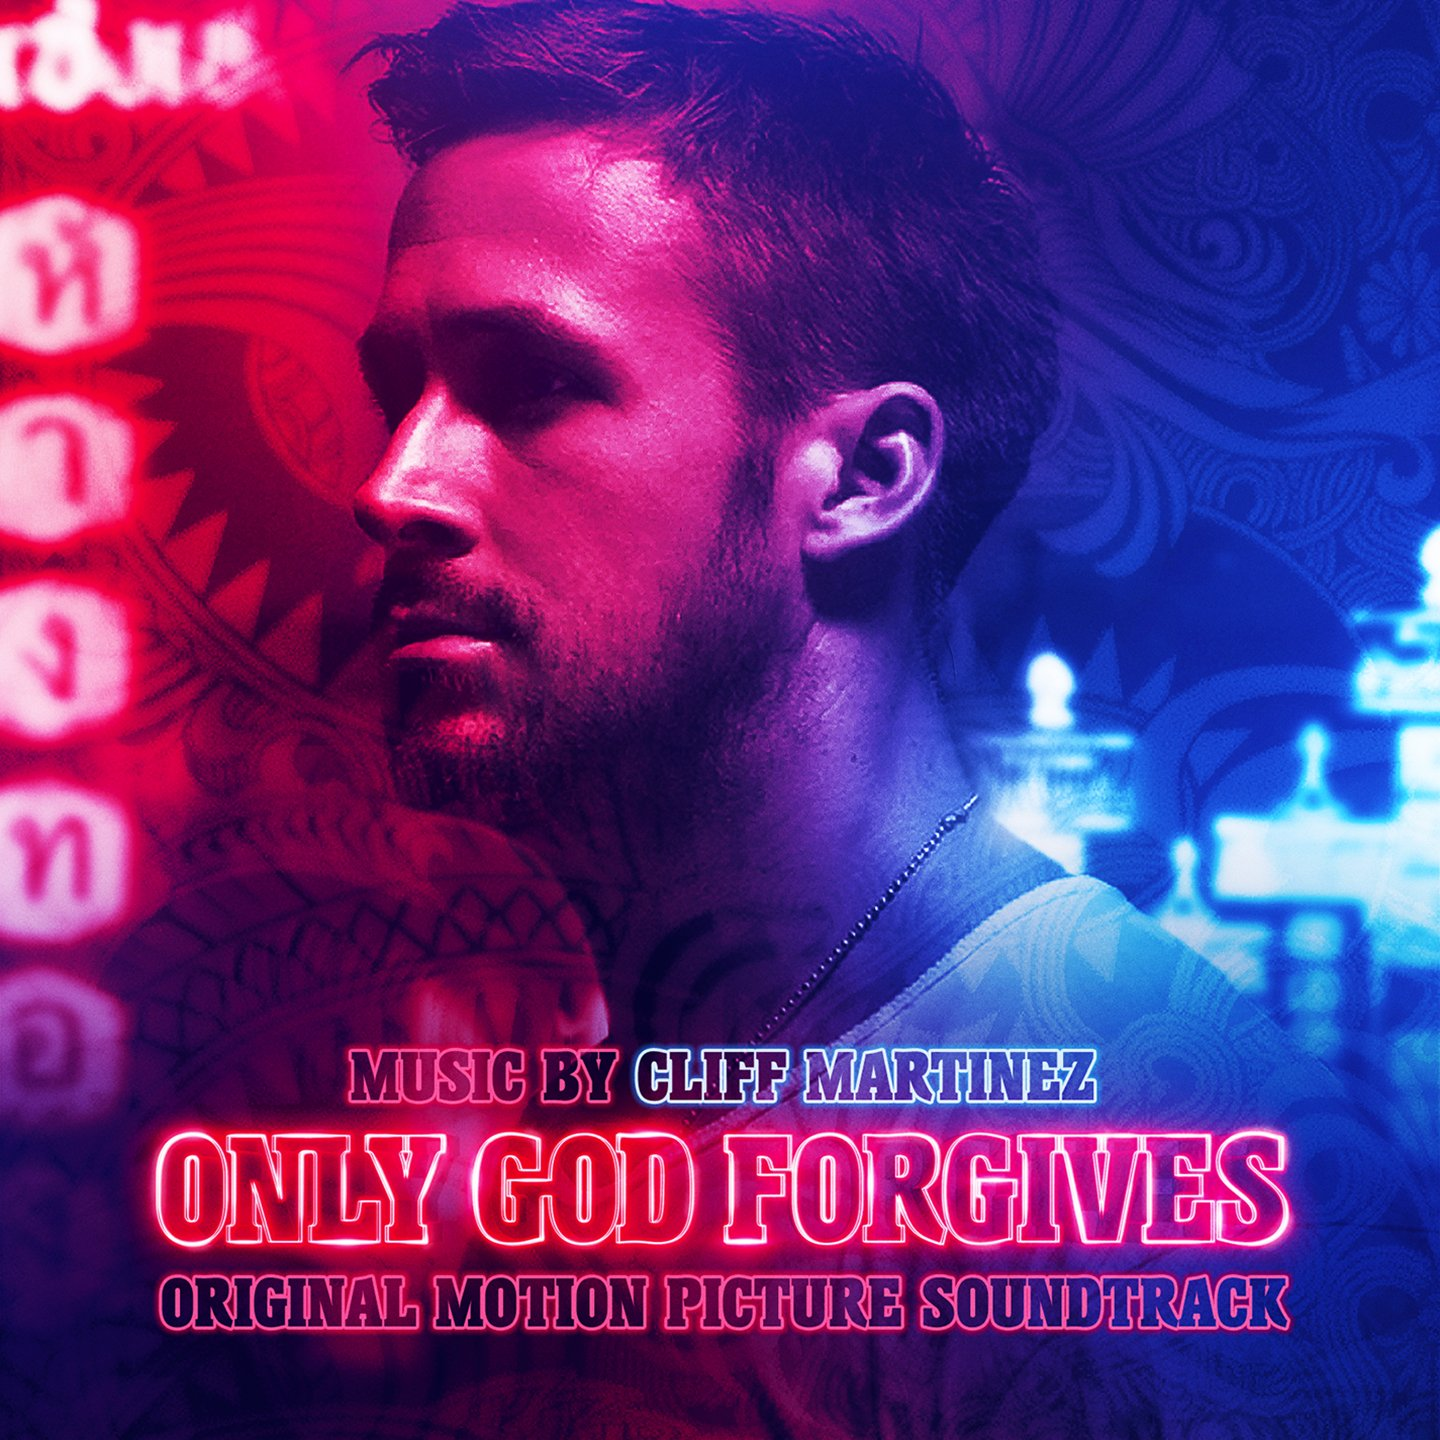 Only God Forgives: Original Motion Picture Soundtrack